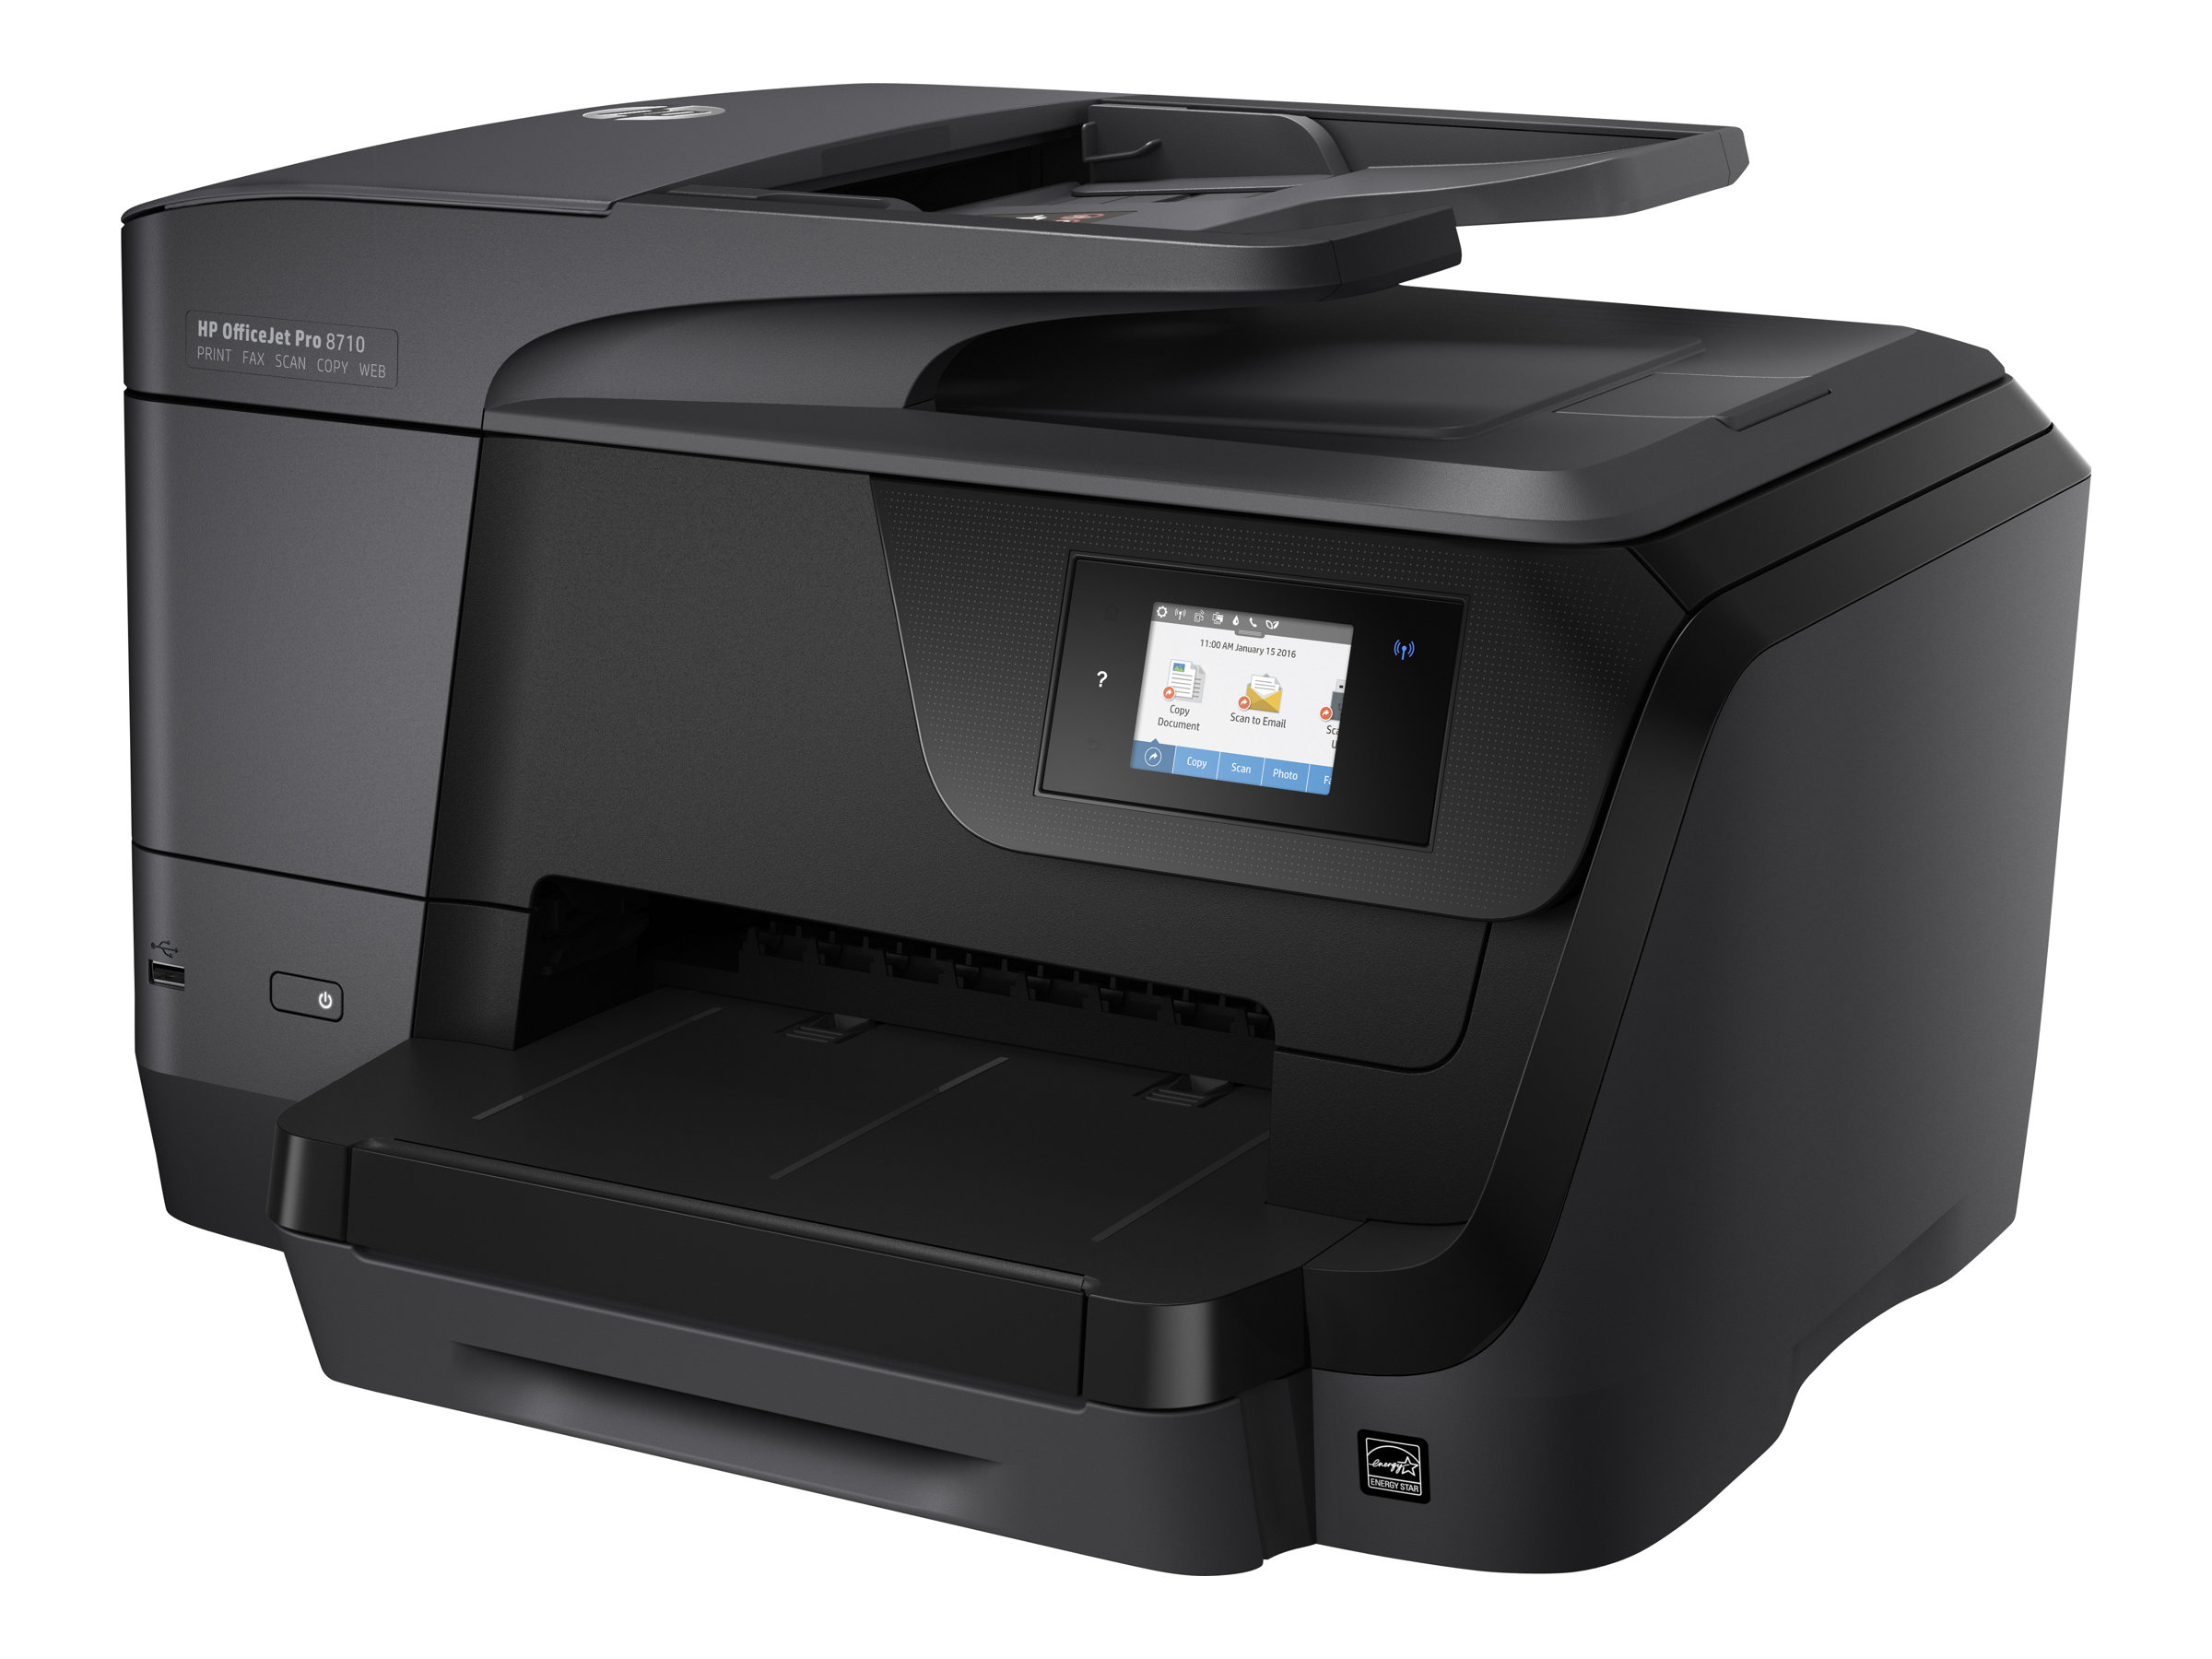 hp officejet pro 8710 all in one imprimante multifonctions couleur imprimantes jet d 39 encre. Black Bedroom Furniture Sets. Home Design Ideas